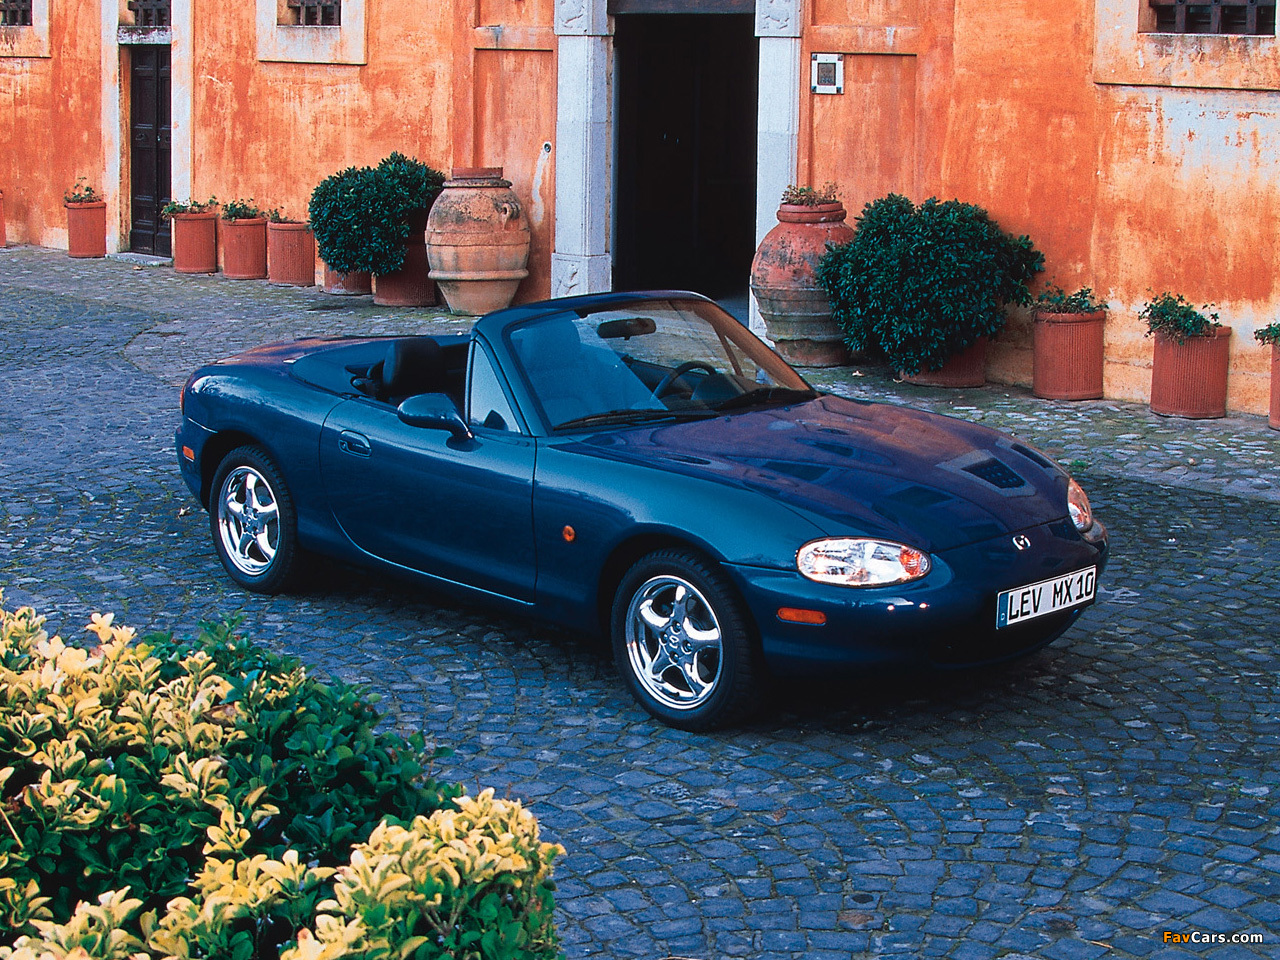 New Mazda Mx 5 Retractable Fastback 2017 Review Pictures moreover Mx 5 25th together with 2017 Mazda Mx 5rf Nyias 8 as well Mx 5 25th additionally Mx 5 25th. on mazda mx5